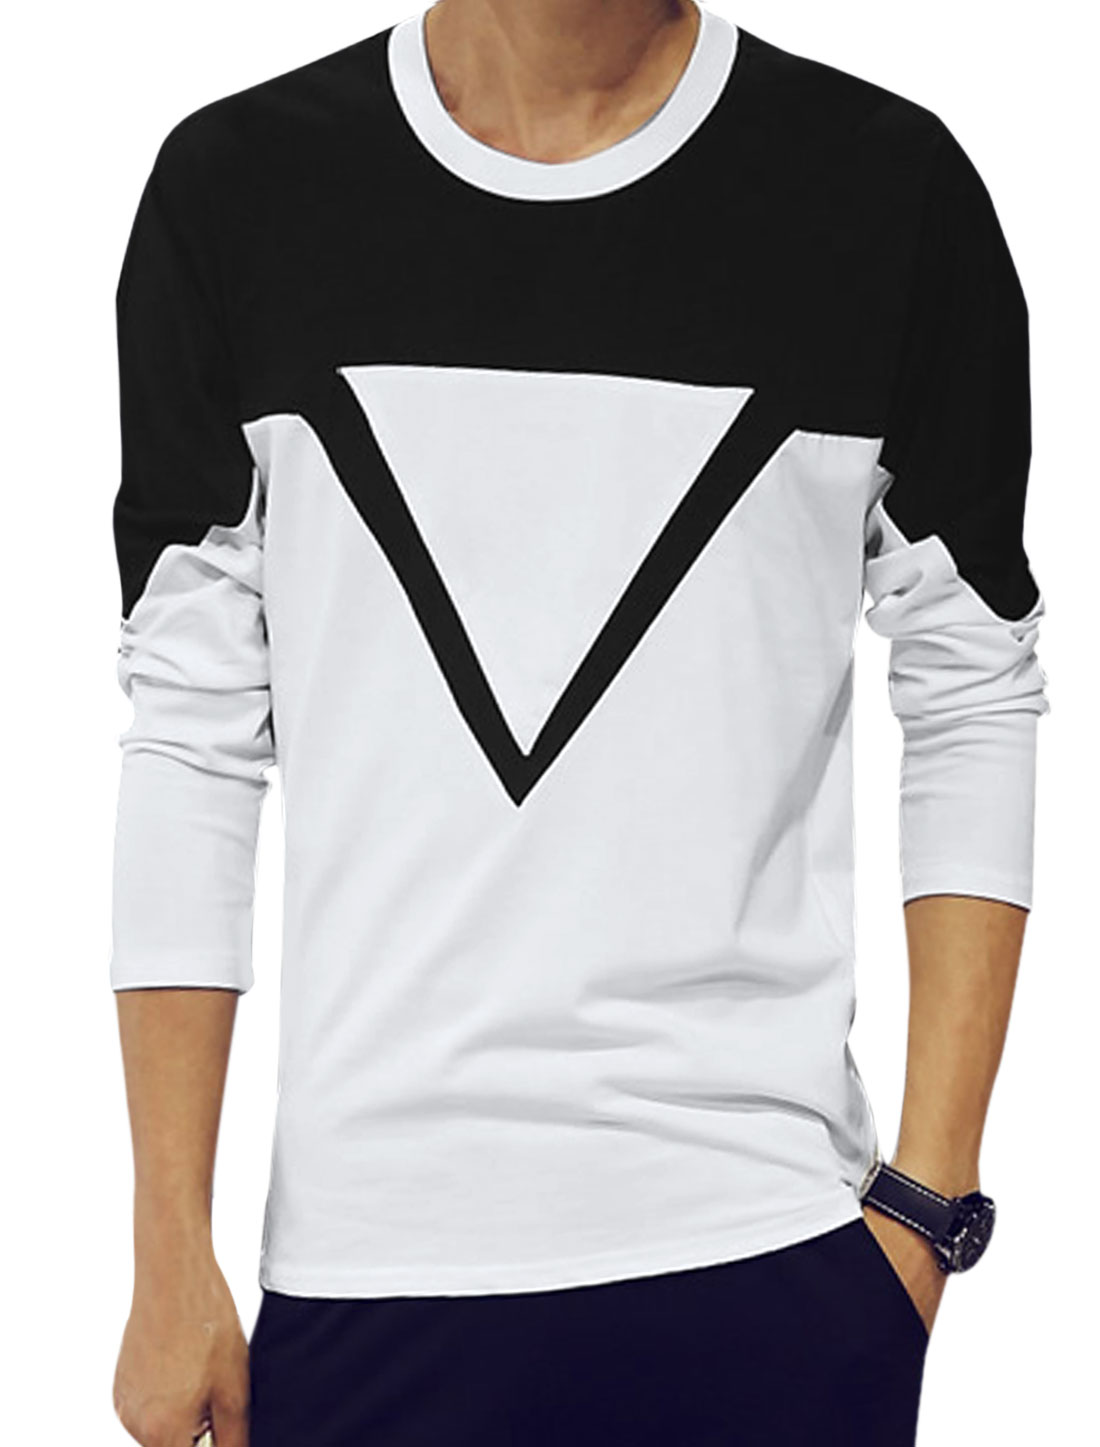 Men Long Sleeves Geometric Print Tee Shirt Black White S